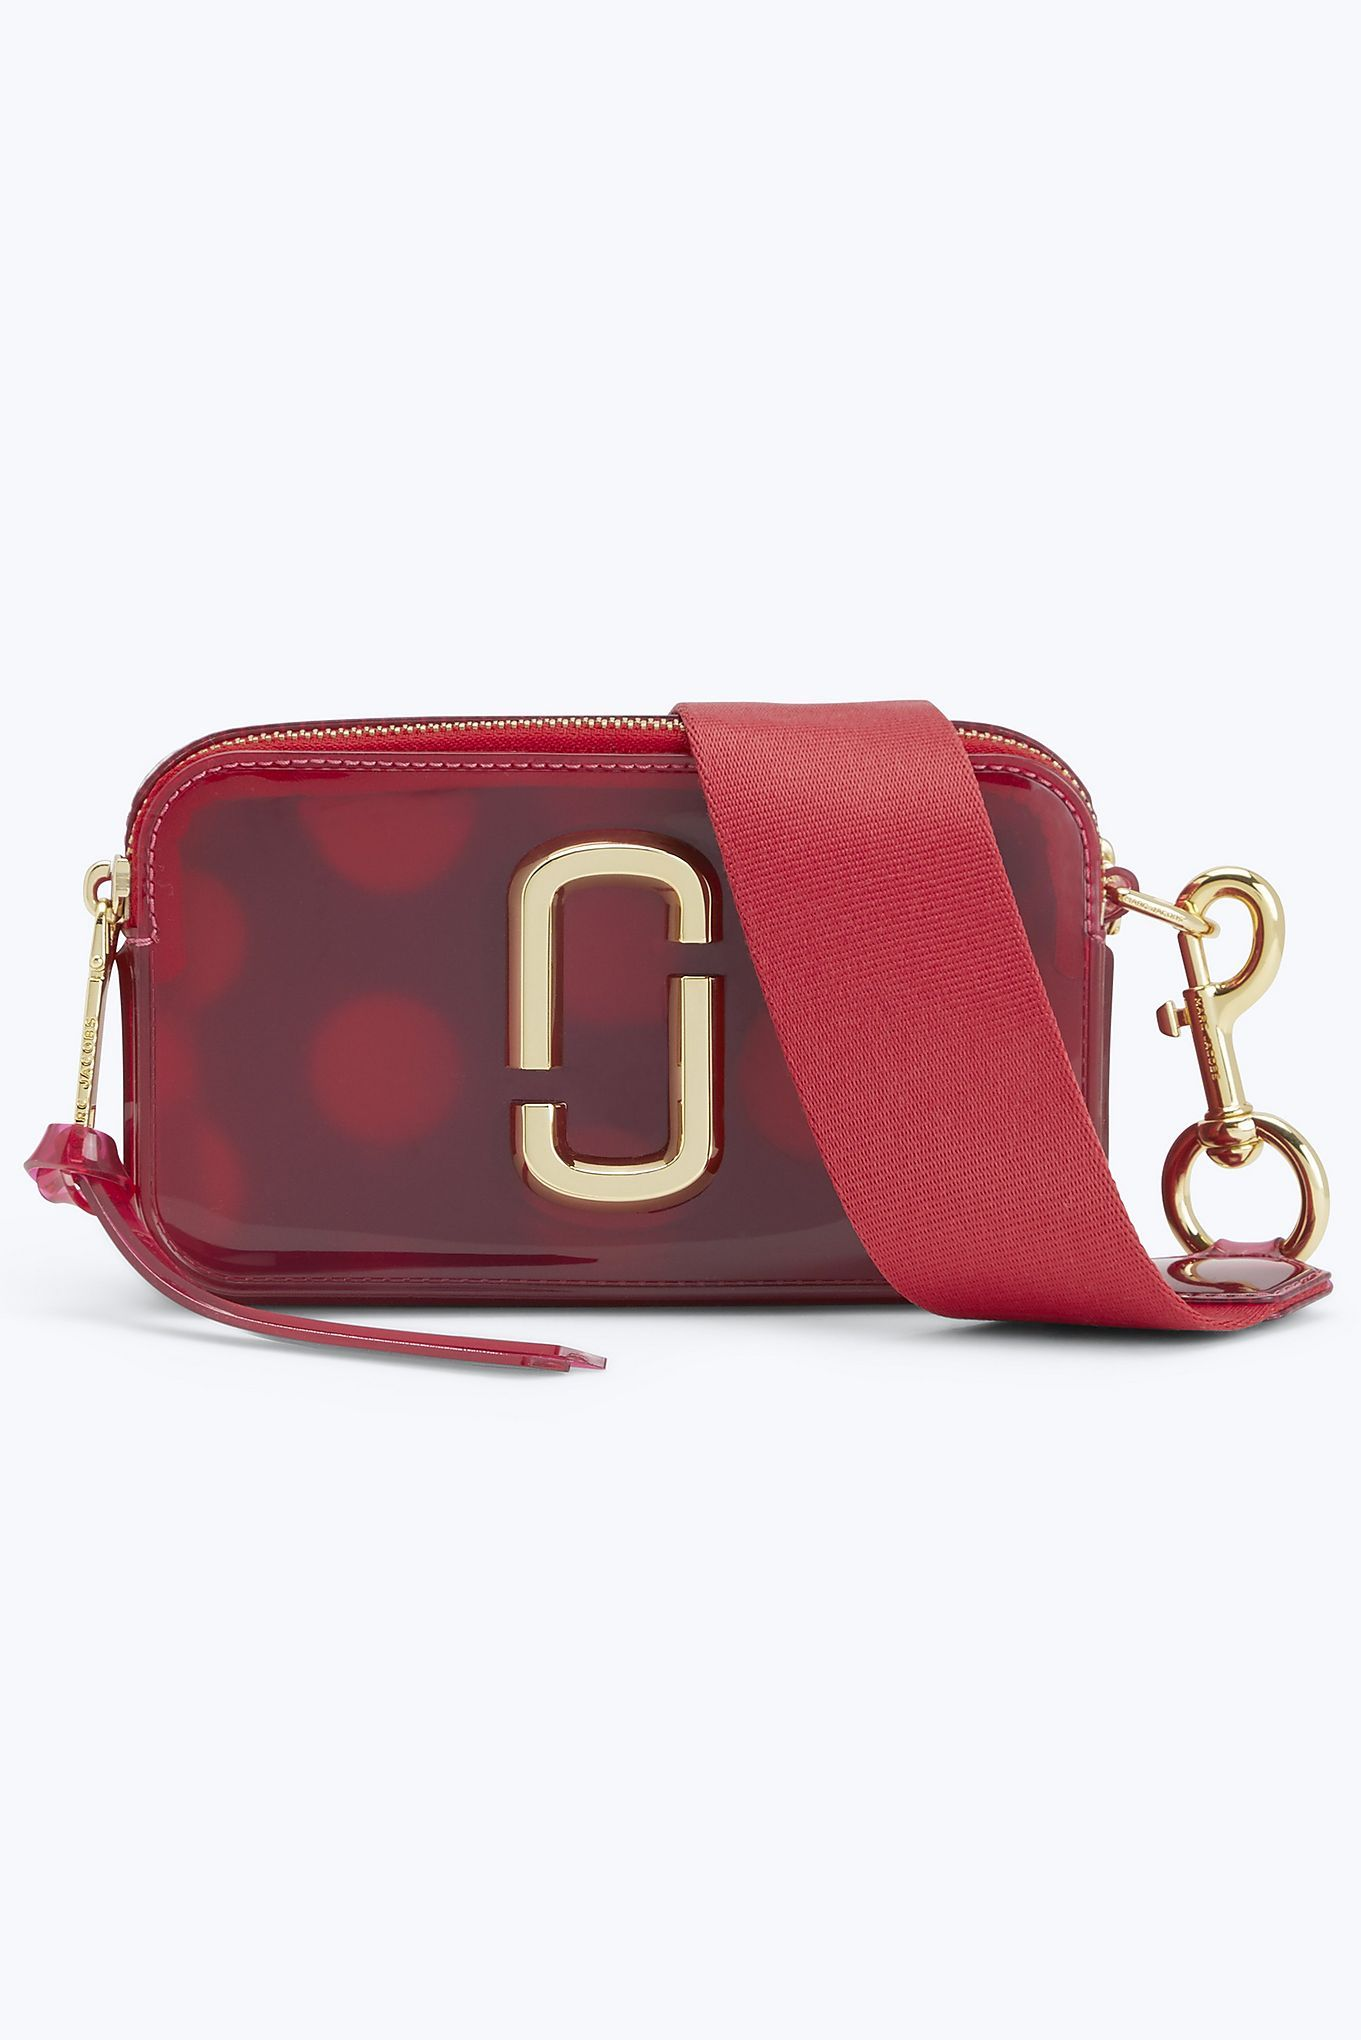 Jelly Snapshot Small Camera Bag | Marc Jacobs | Raspberry